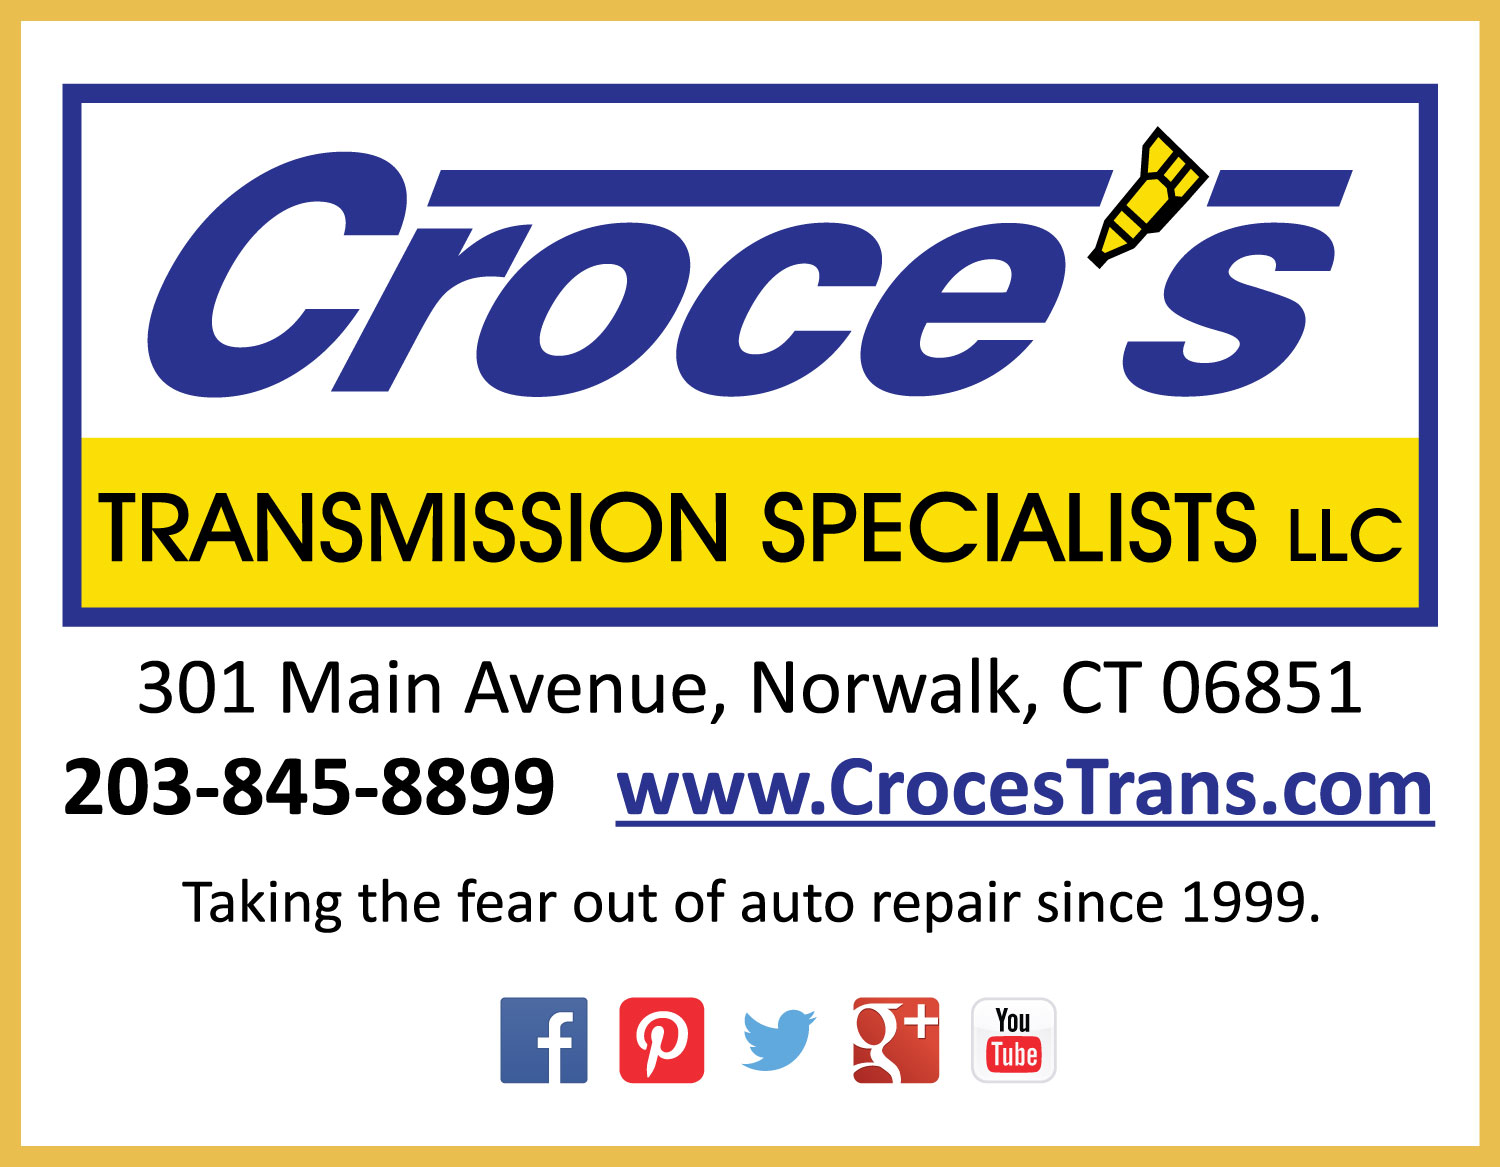 Croce's Transmission Specialists LLC